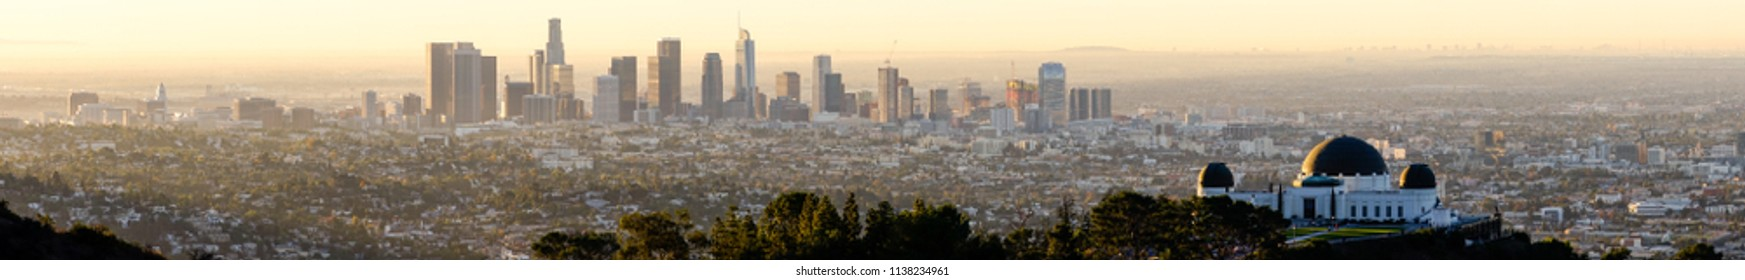 The iconic town of Los Angeles California stretching out in all directions as far as the eye can see